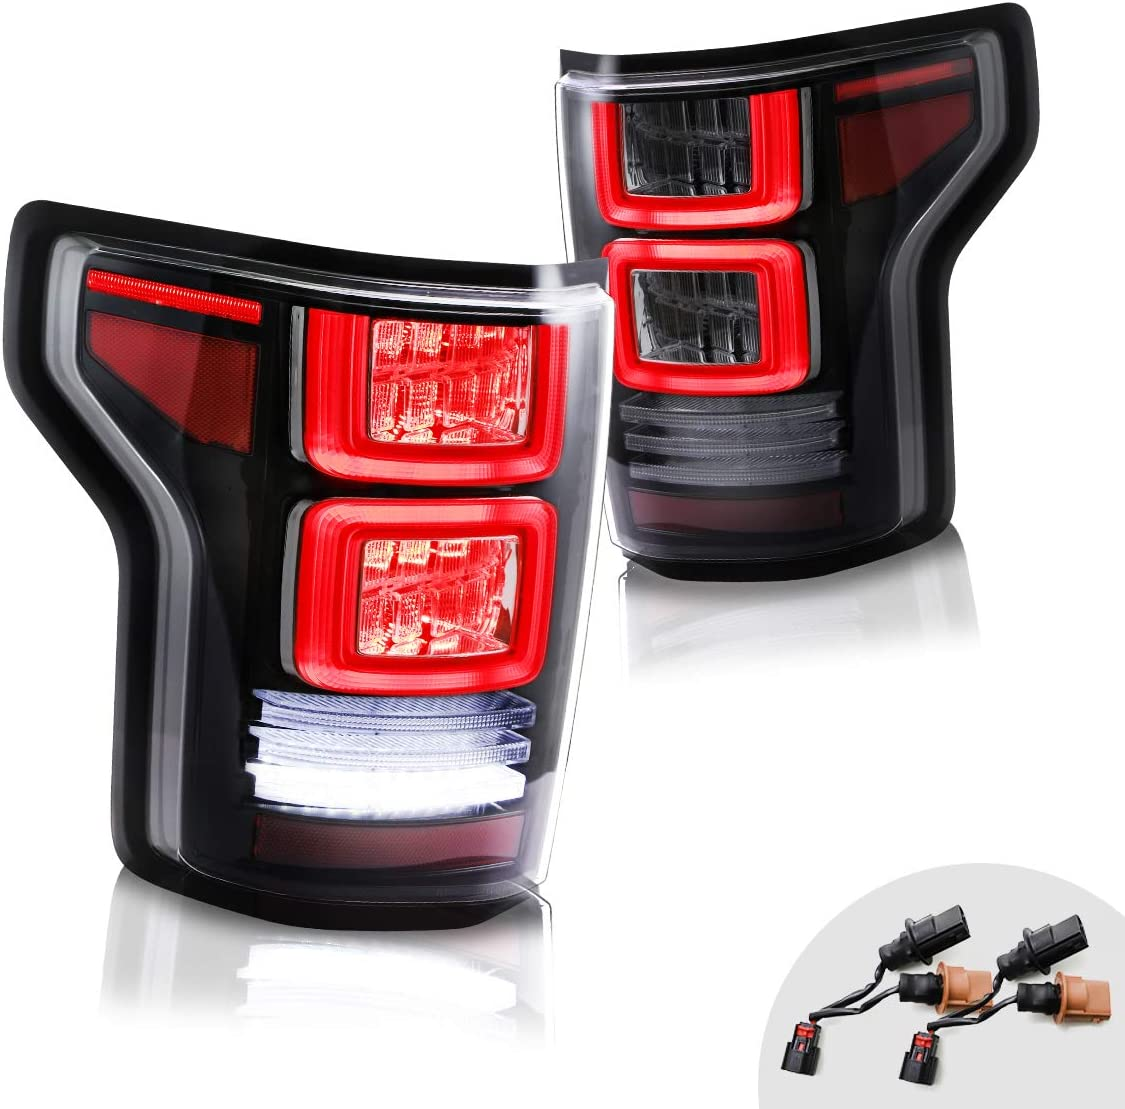 MOSTPLUS Full LED Tail Lights for Ford F-150 F150 2015 2016 2017 Rear Lamp Assembly Smoke Tinted